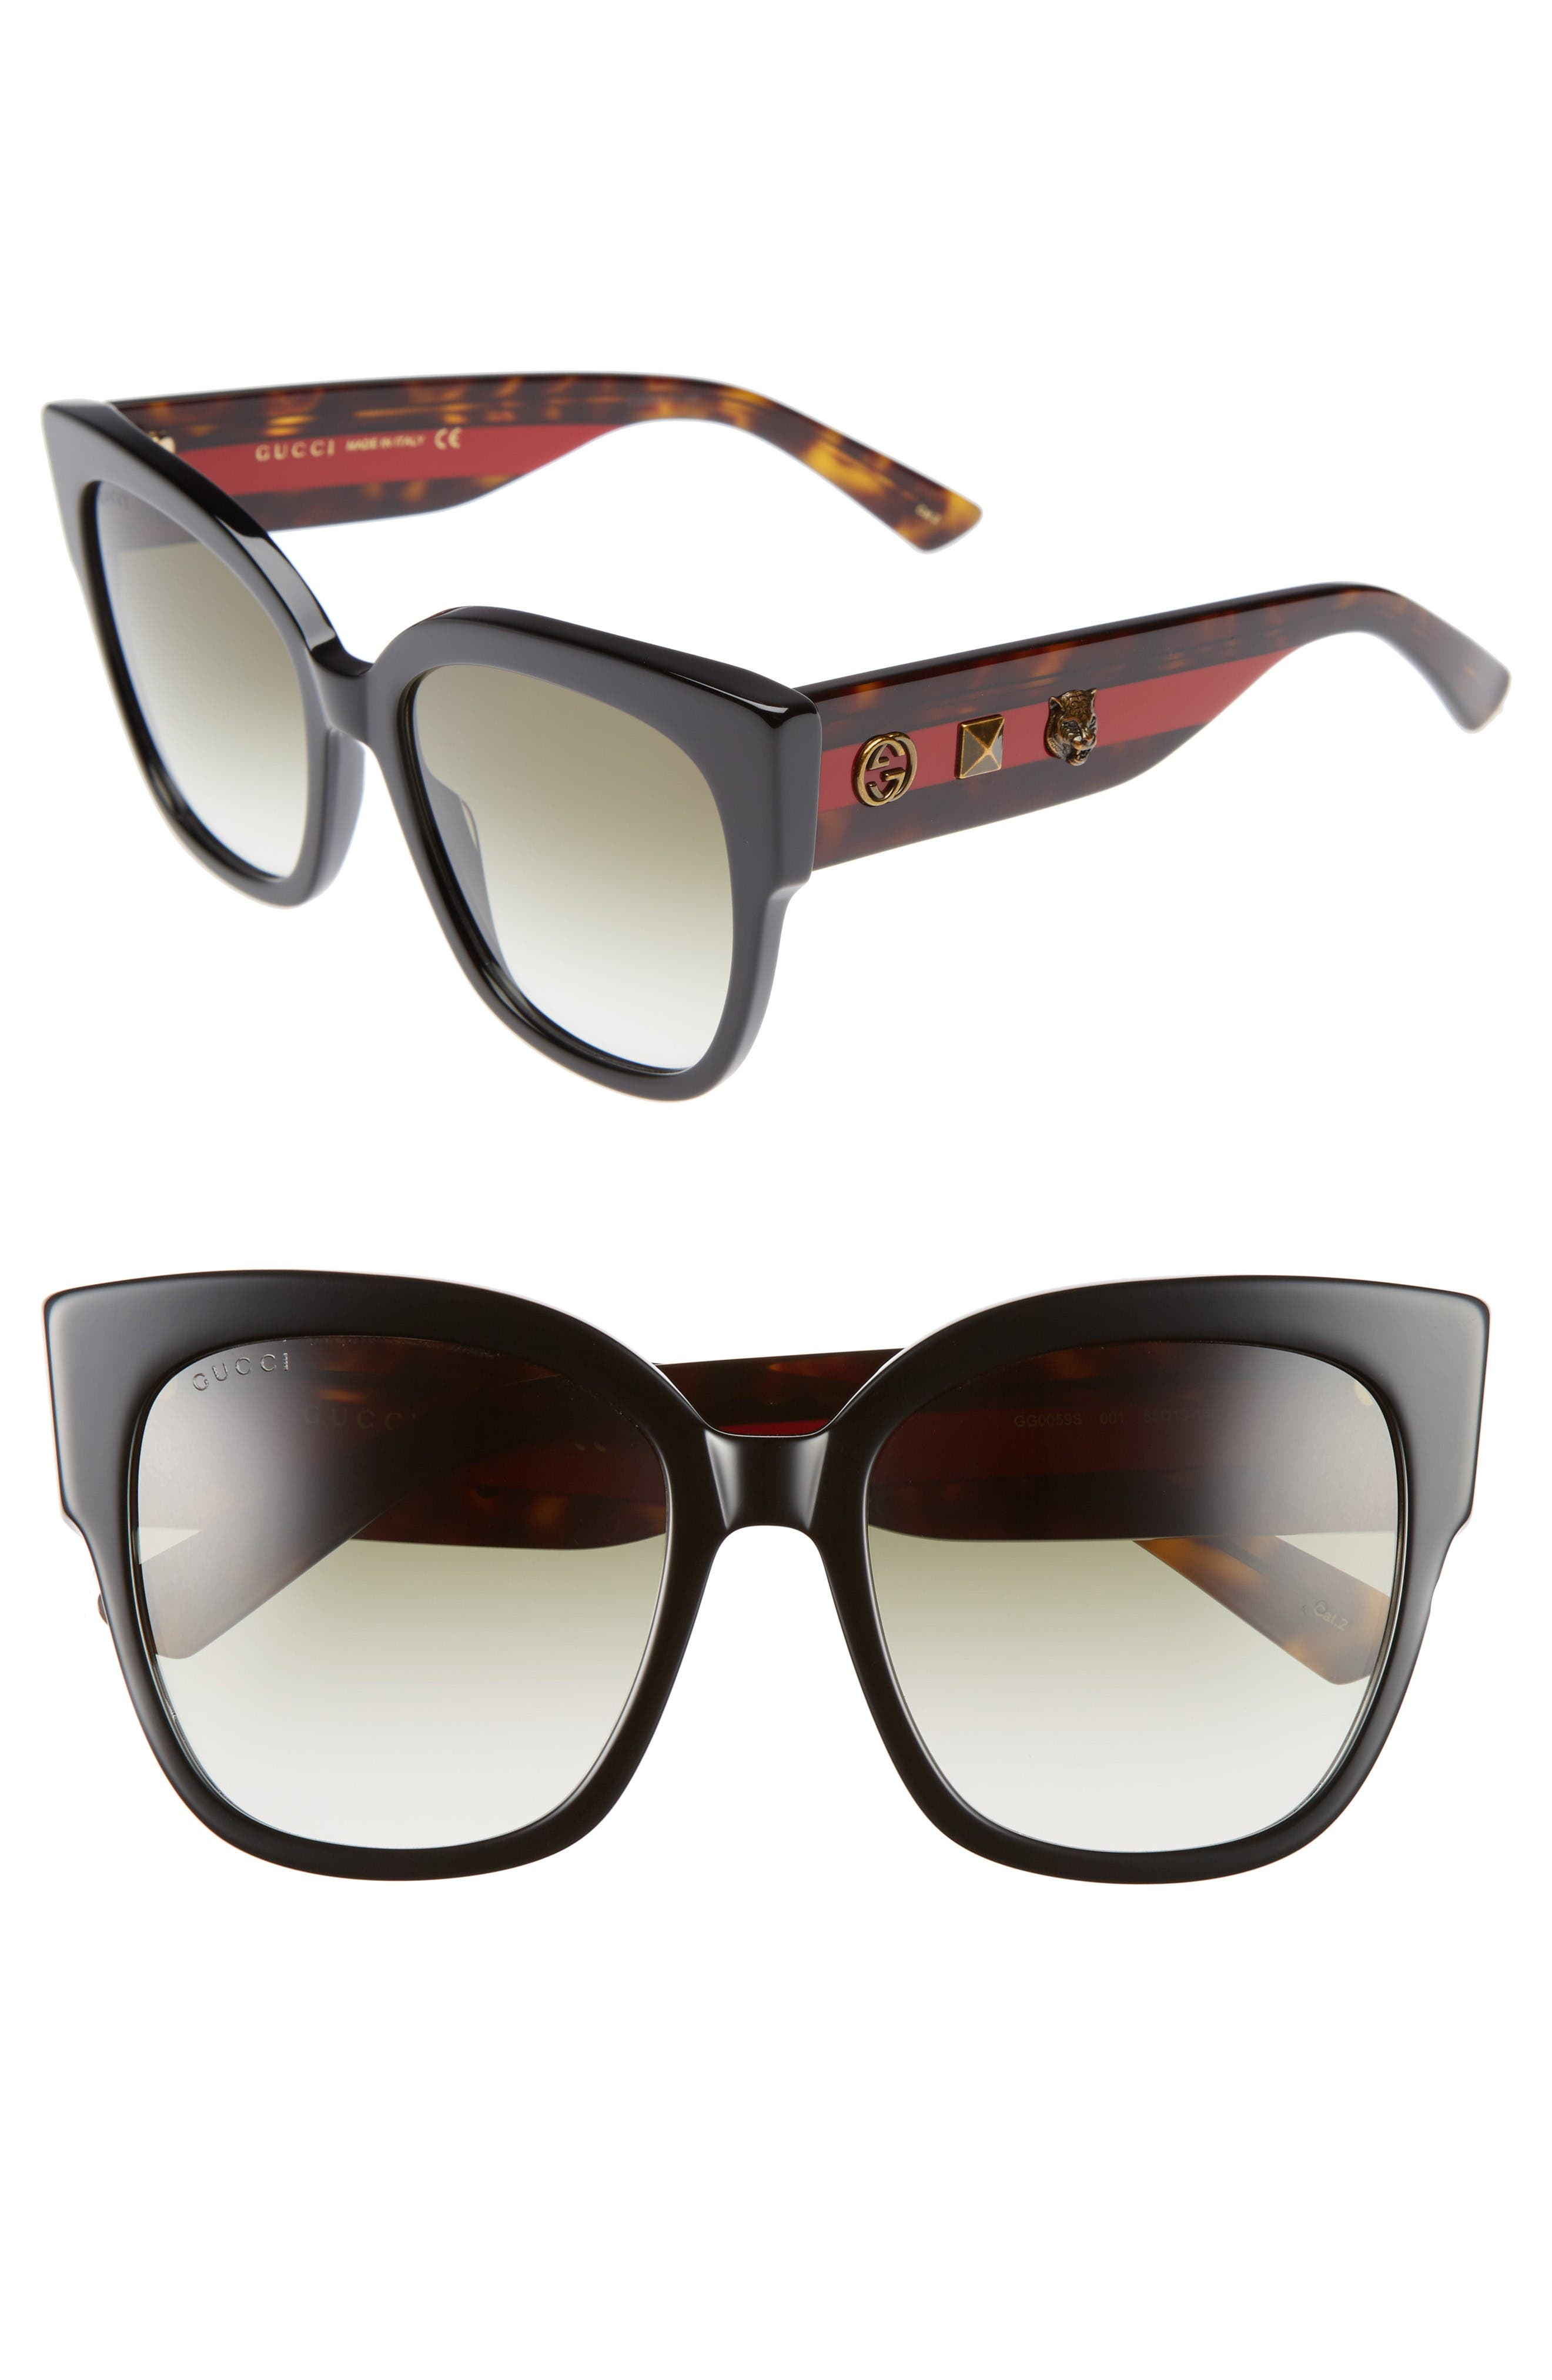 Alternate Image 1 Selected - Gucci 55mm Butterfly Sunglasses